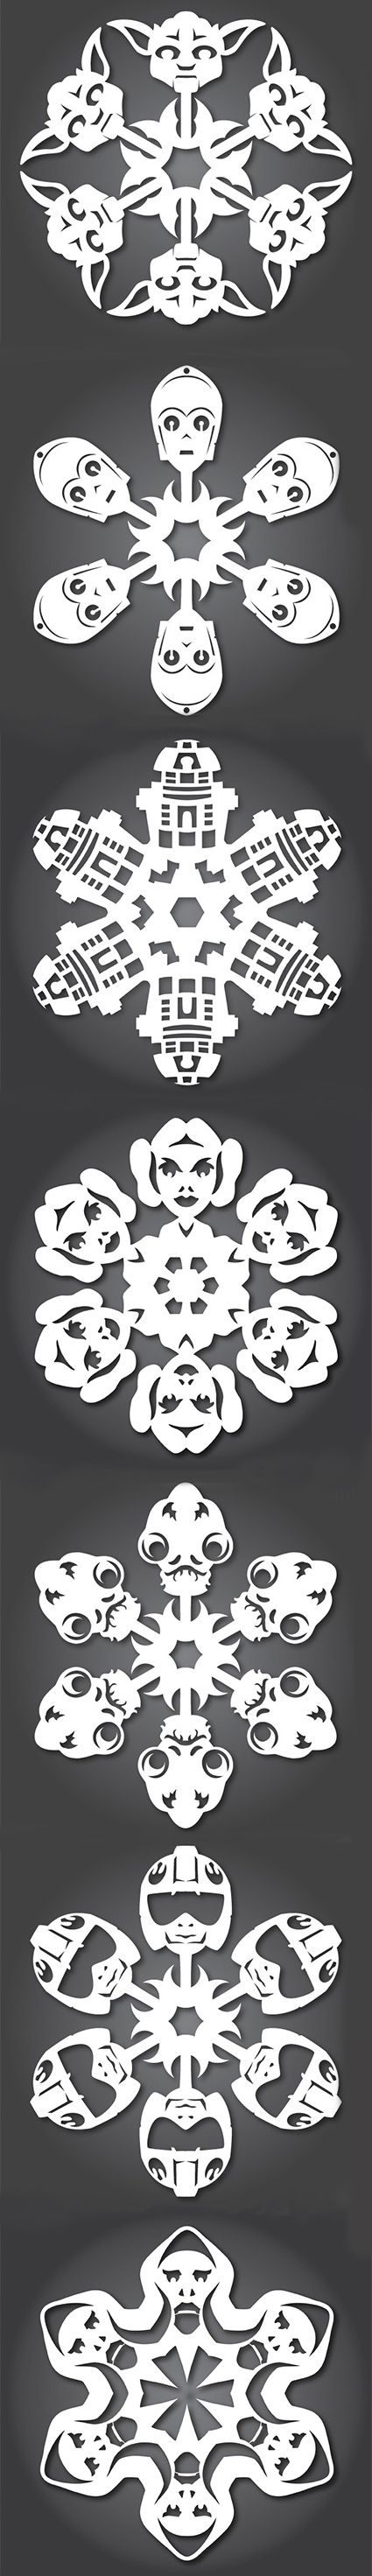 A little too high effort for me, but I love the final product. Star Wars Snowflake Templates. Print them out and create a Star Wars winter wonderland!